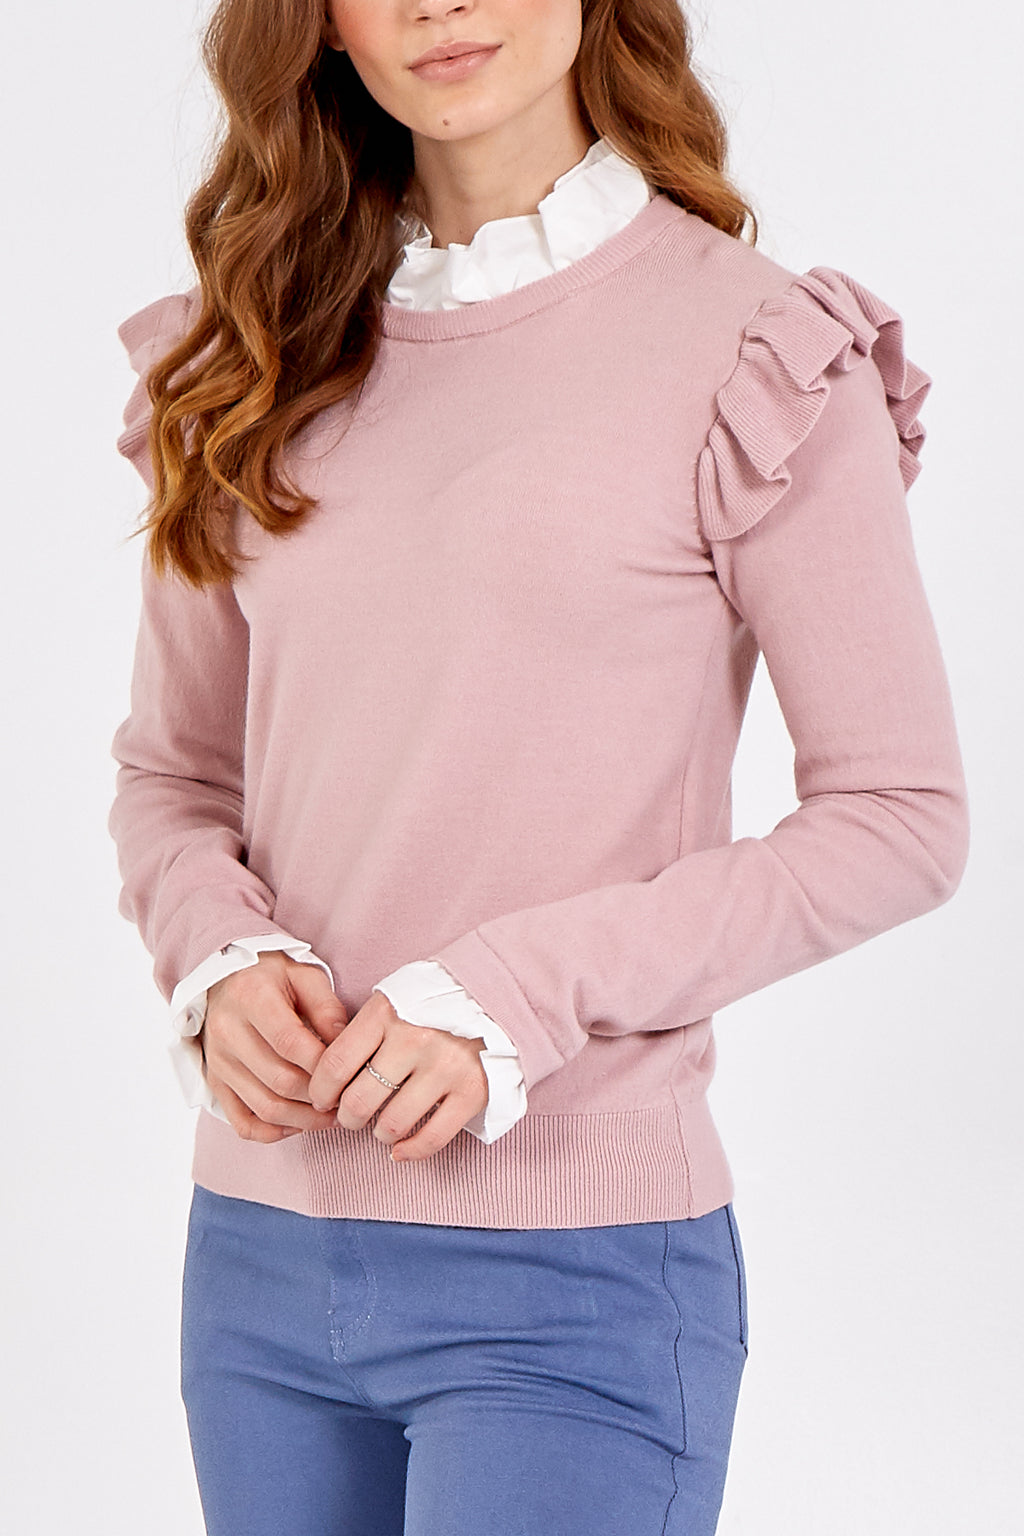 Ruffle Shoulder Jumper With Frill Neck And Cuff